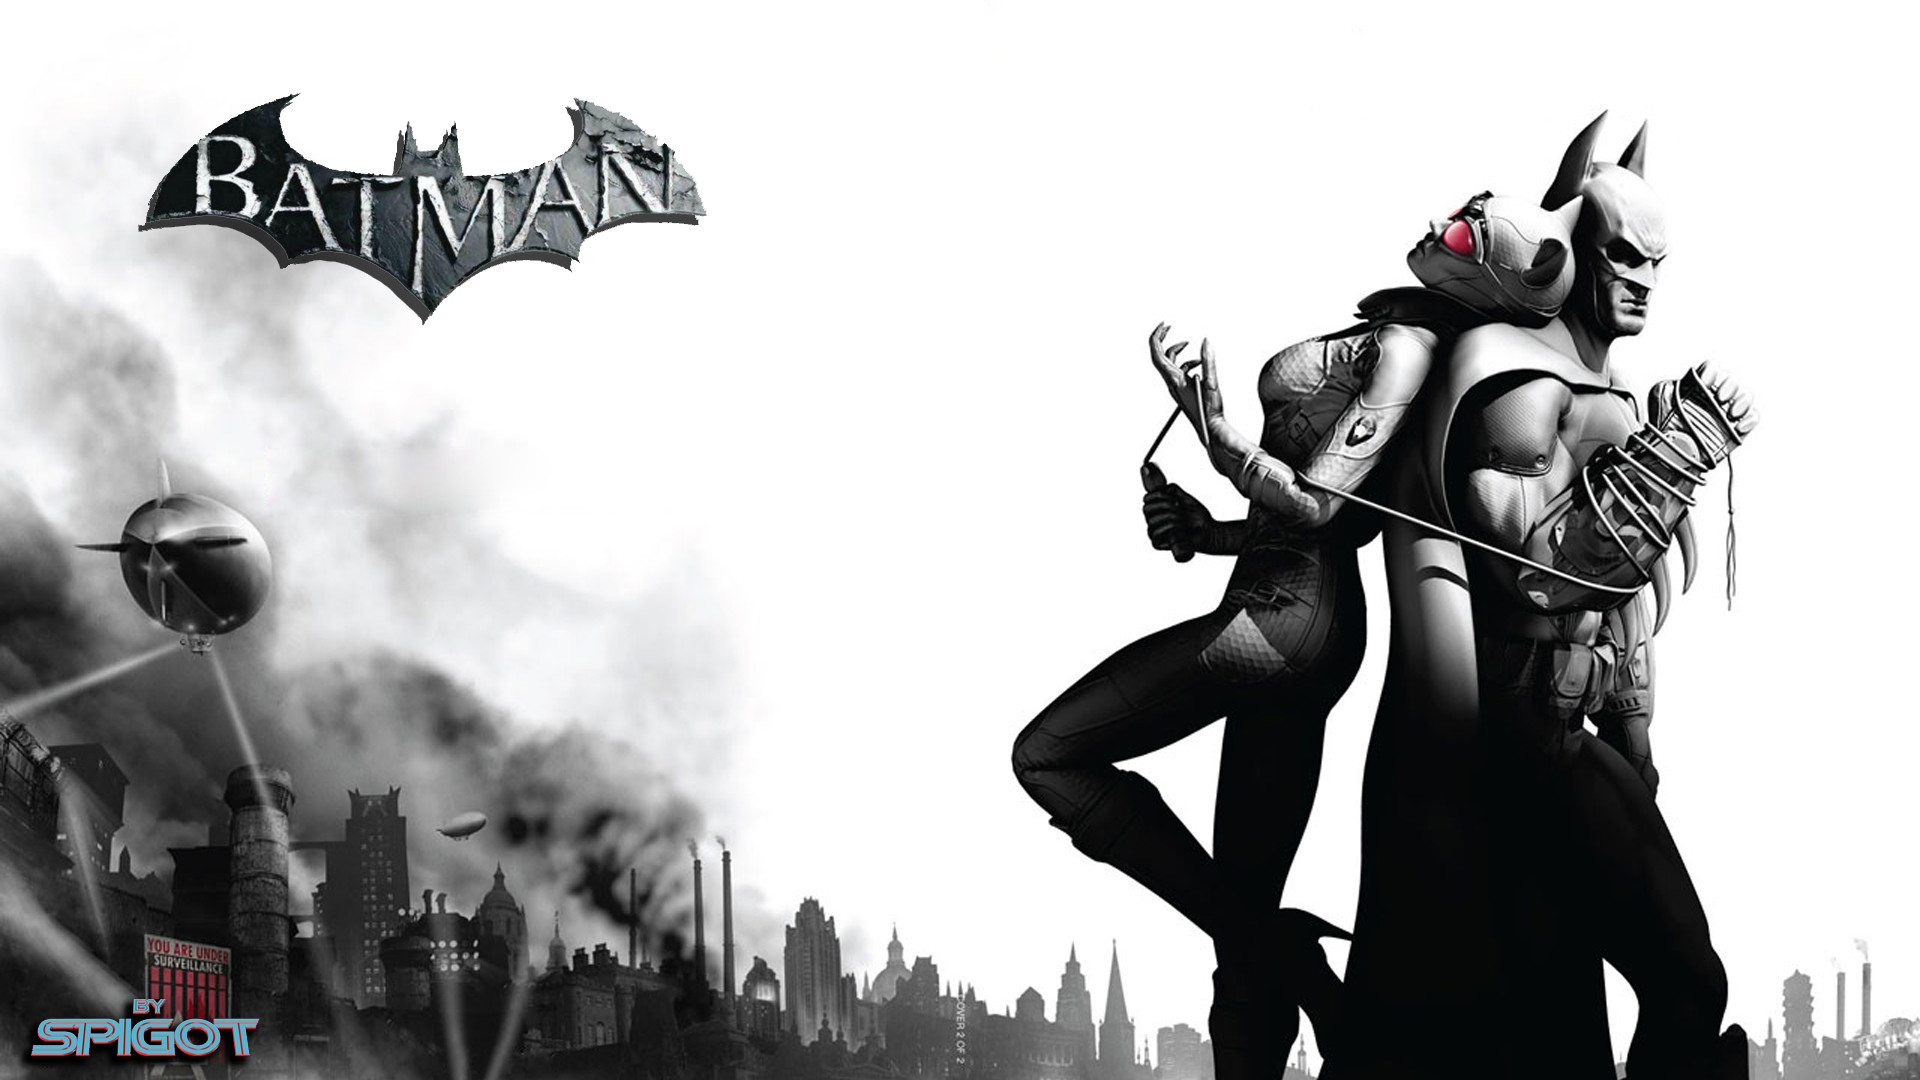 These Batman Arkham City wallpapers are a request from Penfold, so here you  go mate